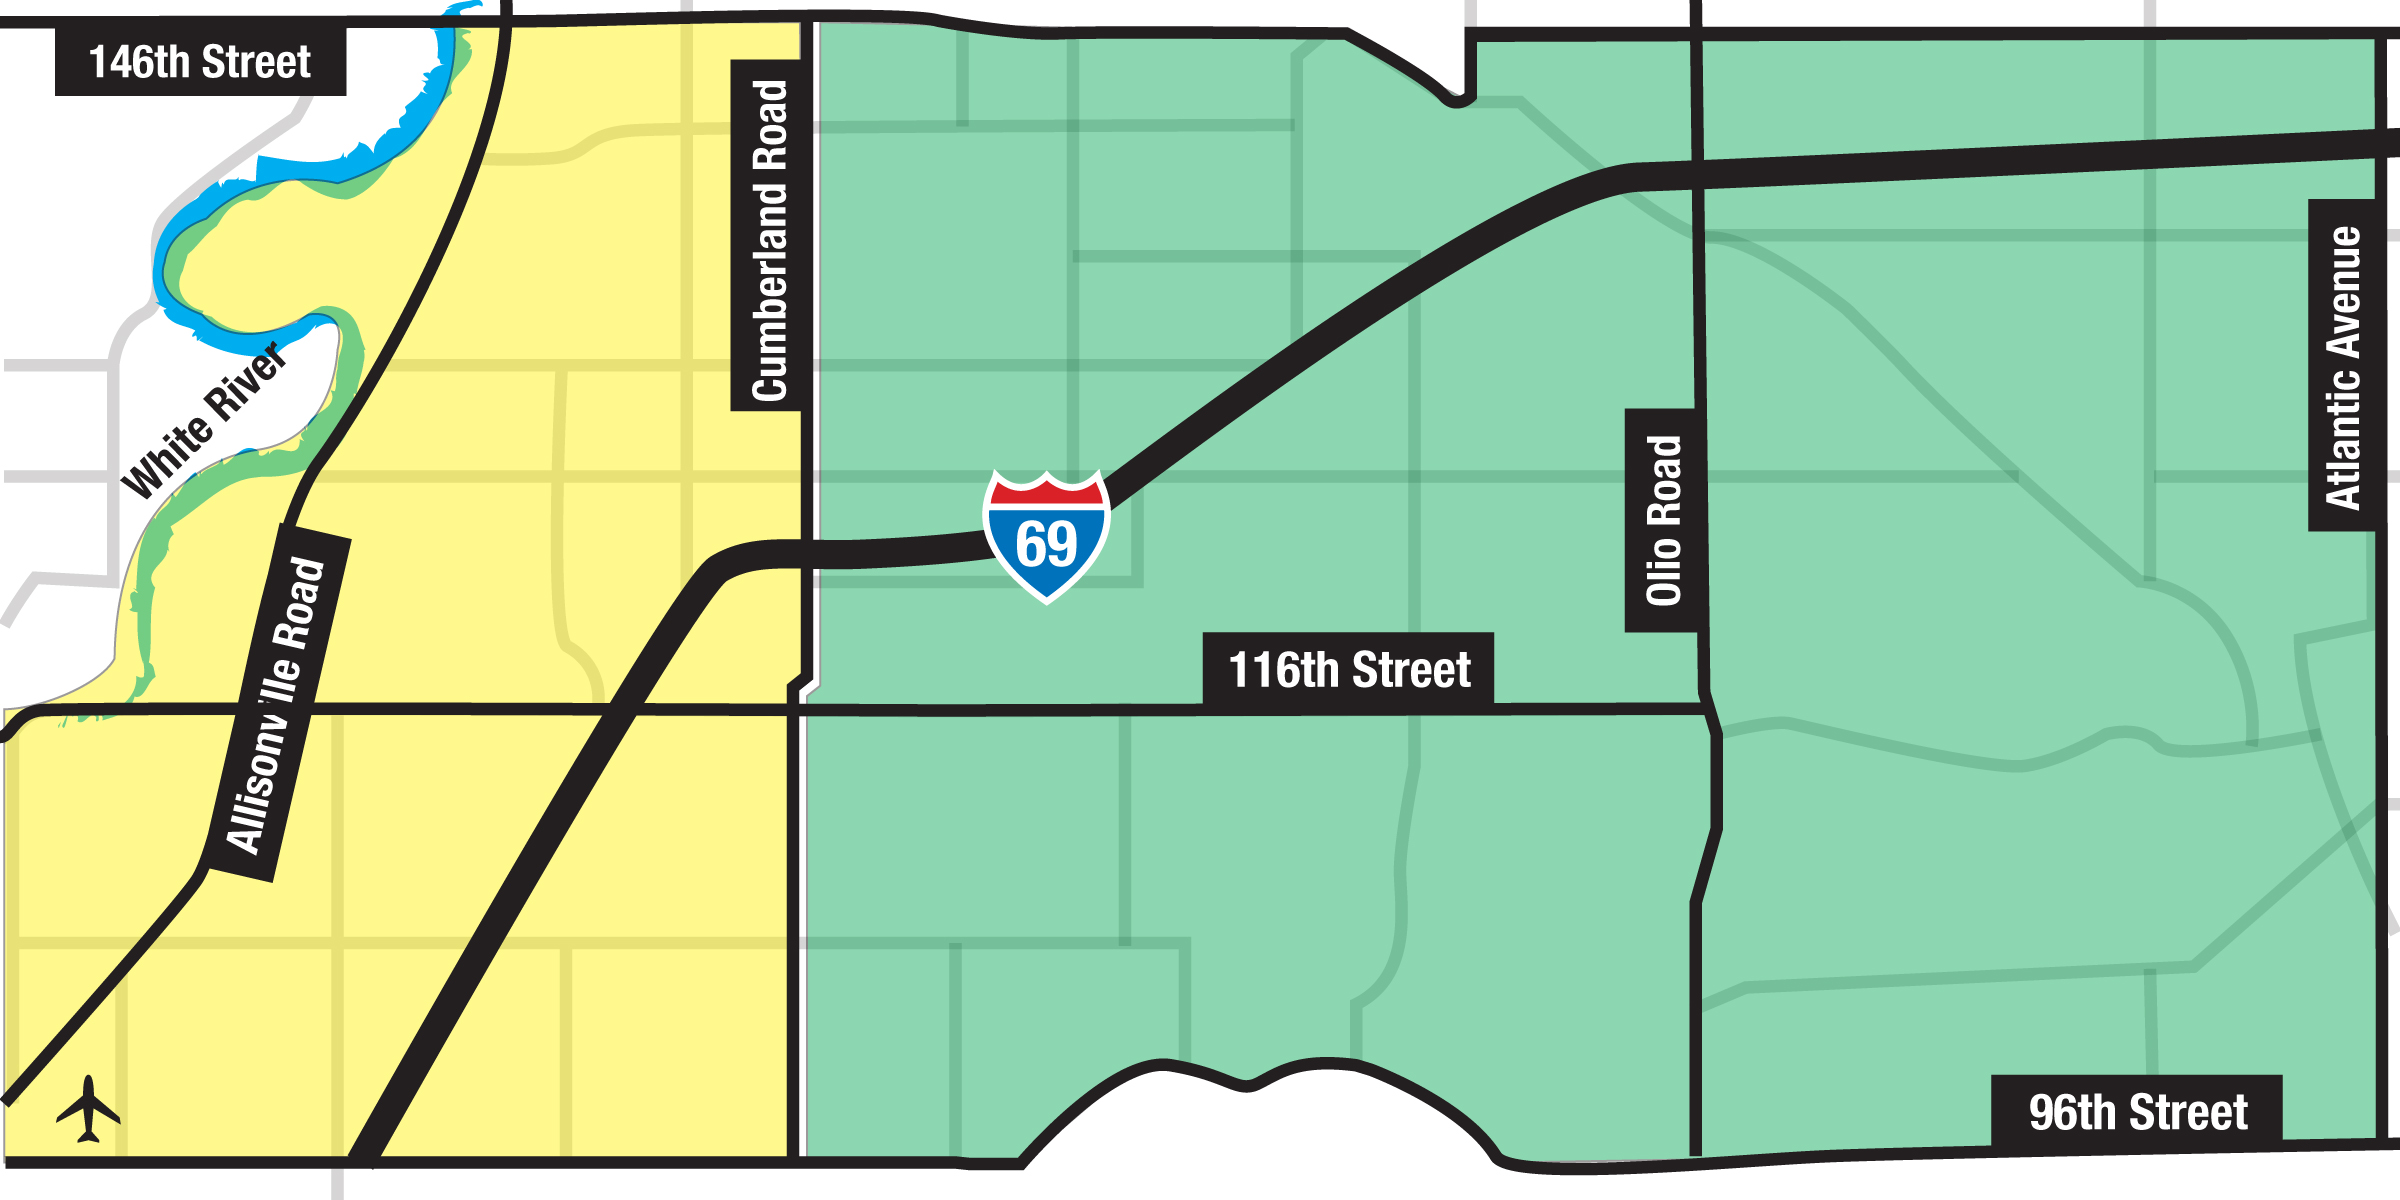 The yellow area represents the Delaware Township and Fishers residents voting bloc, while the green area represents the Fall Creek Township voters in and outside of Fishers voting bloc. Both will vote on the Fall Creek Township and Town of Fishers merger question. (Illustration by Andrea Nickas)